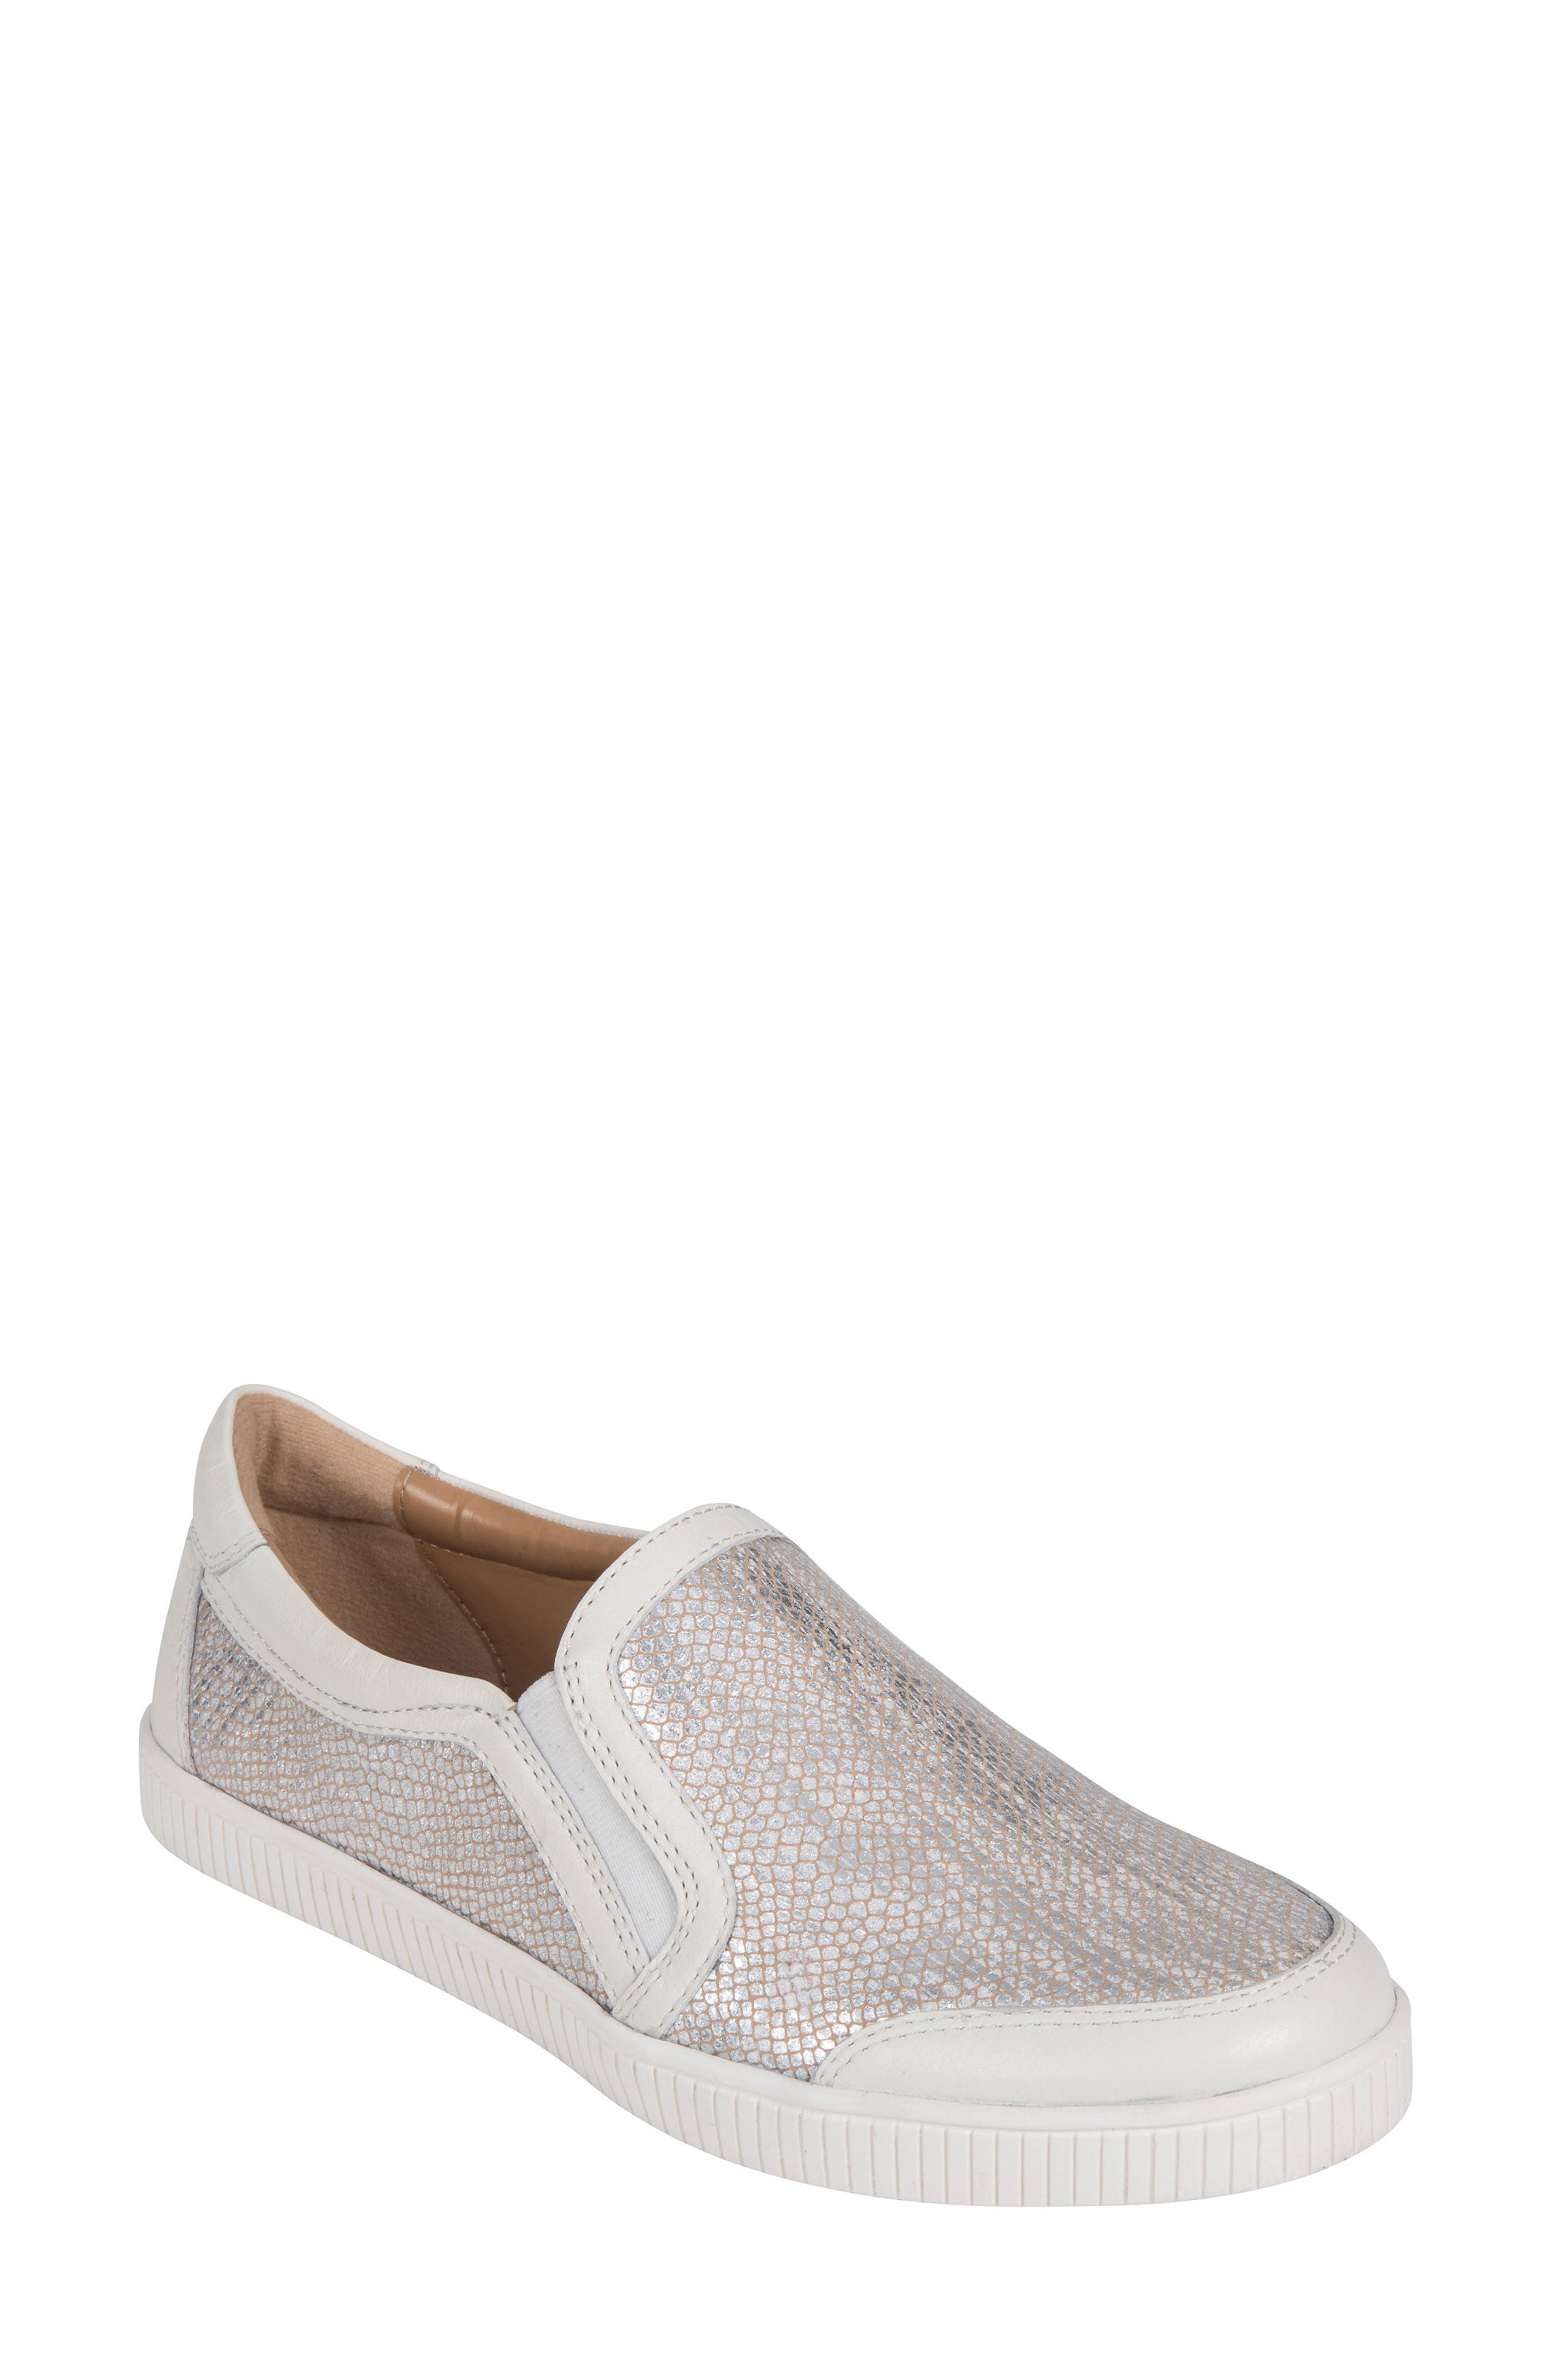 Currant Slip-On Sneaker,                             Main thumbnail 1, color,                             045